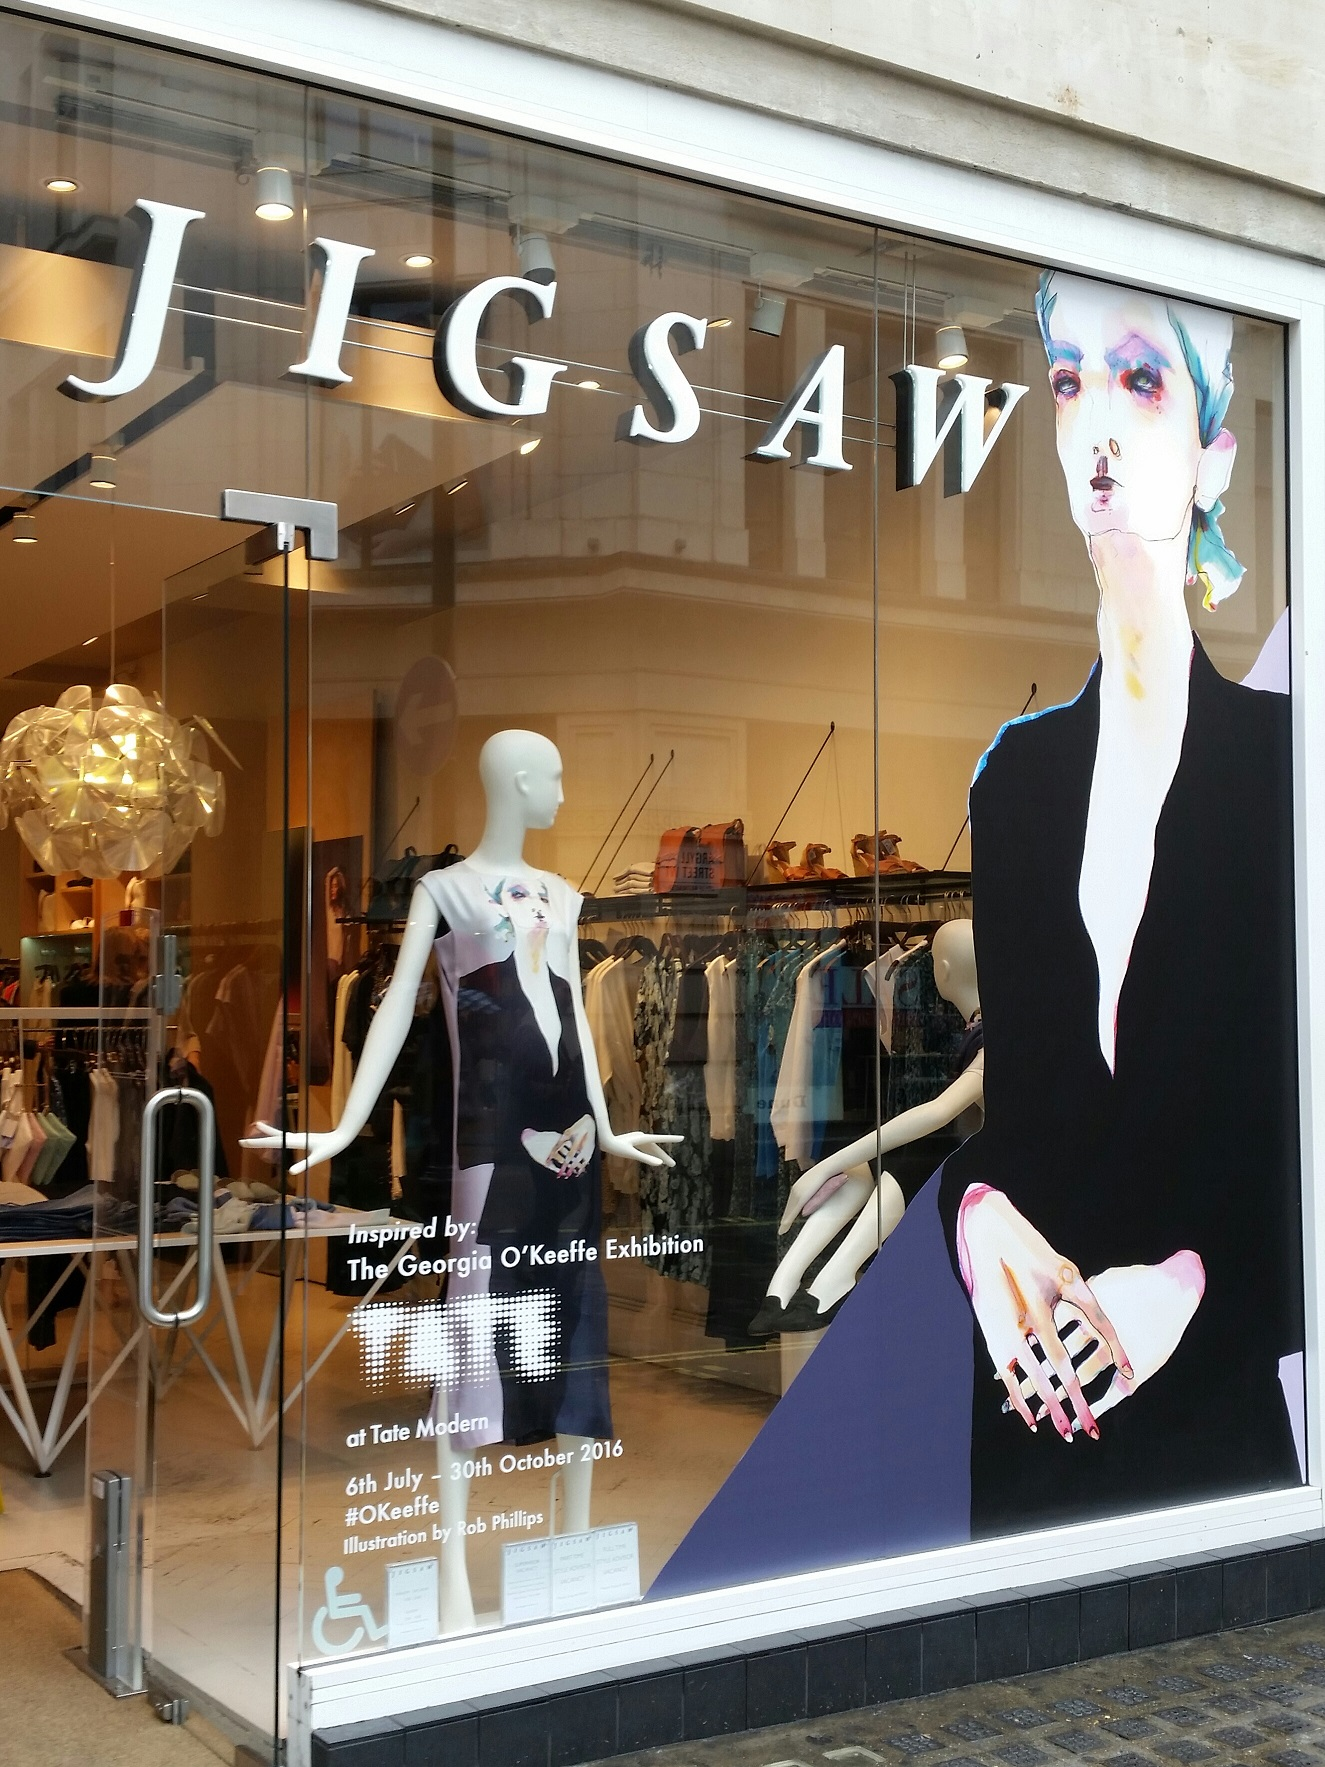 Rob Phillips' illustration in the window of Jigsaw, Argyll Street